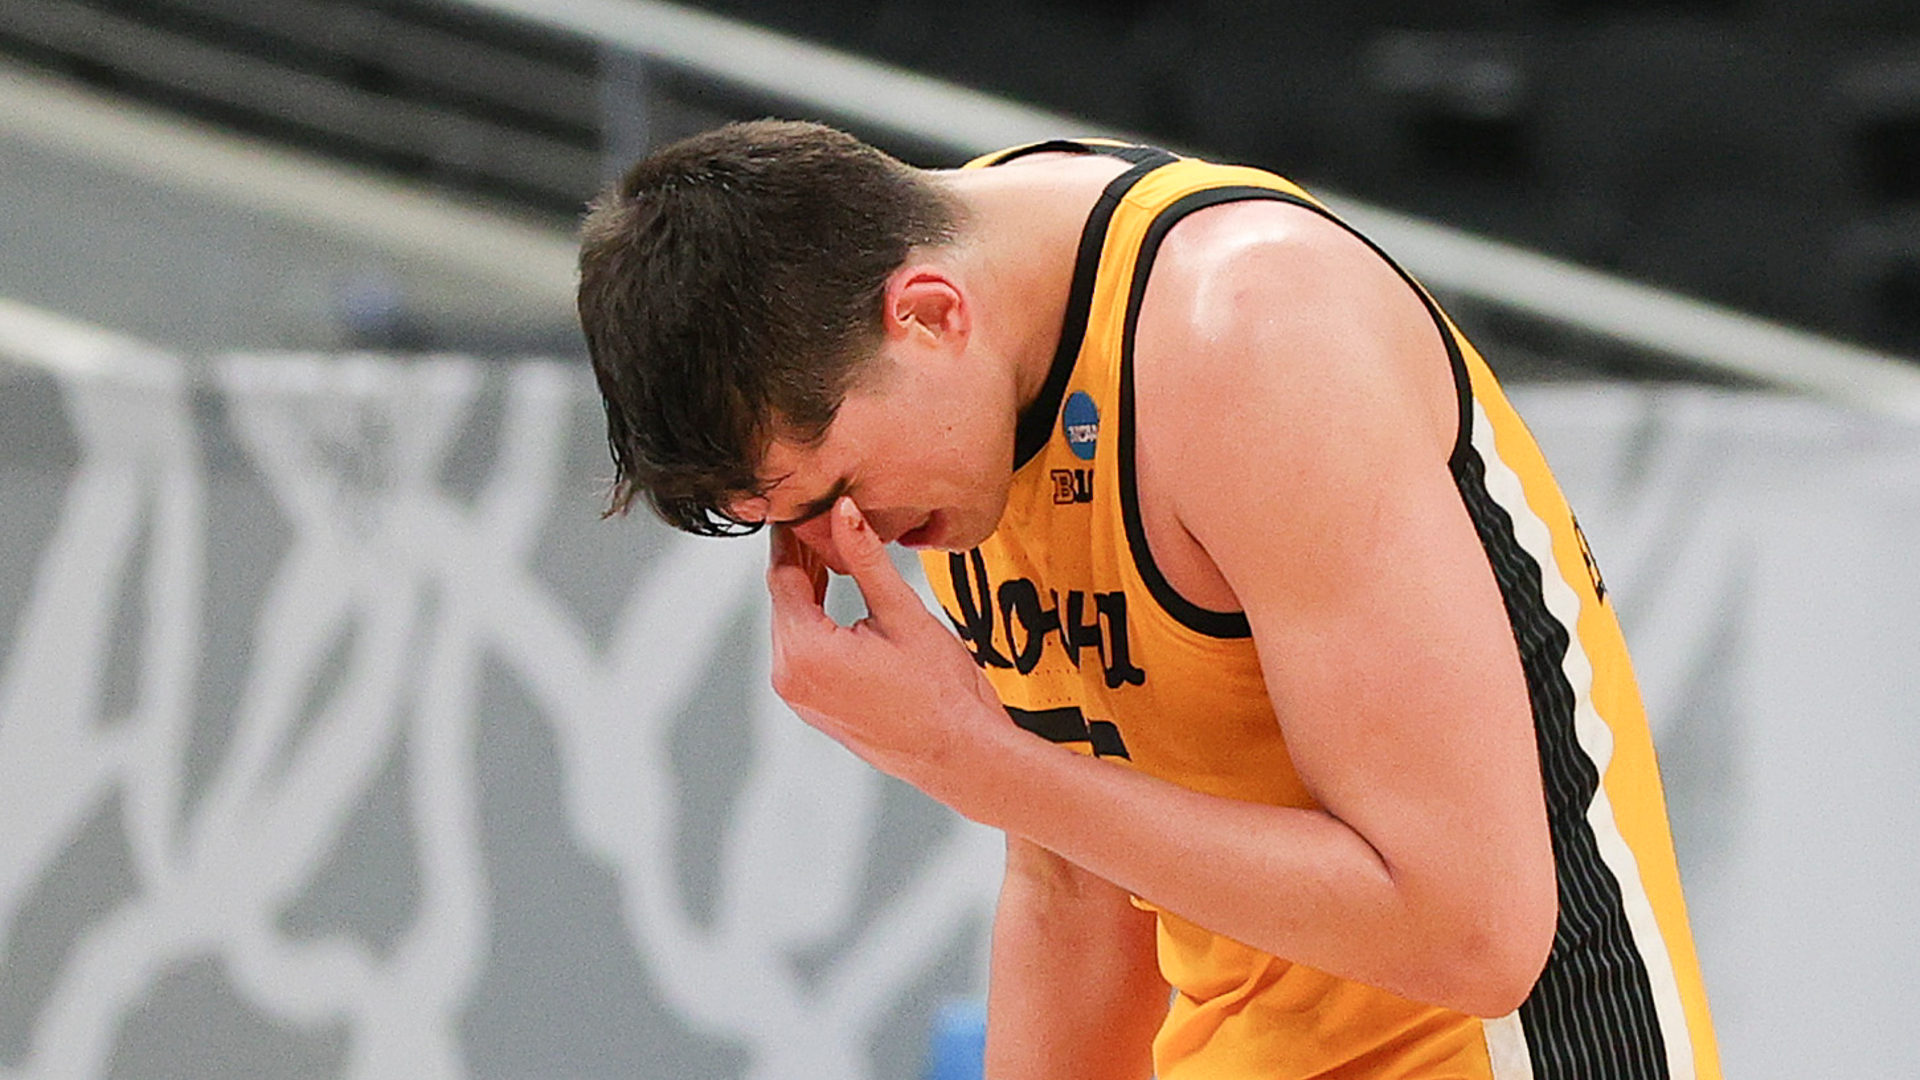 Luka Garza's Iowa tour ends with a brilliant and weeping masterpiece of March Madness